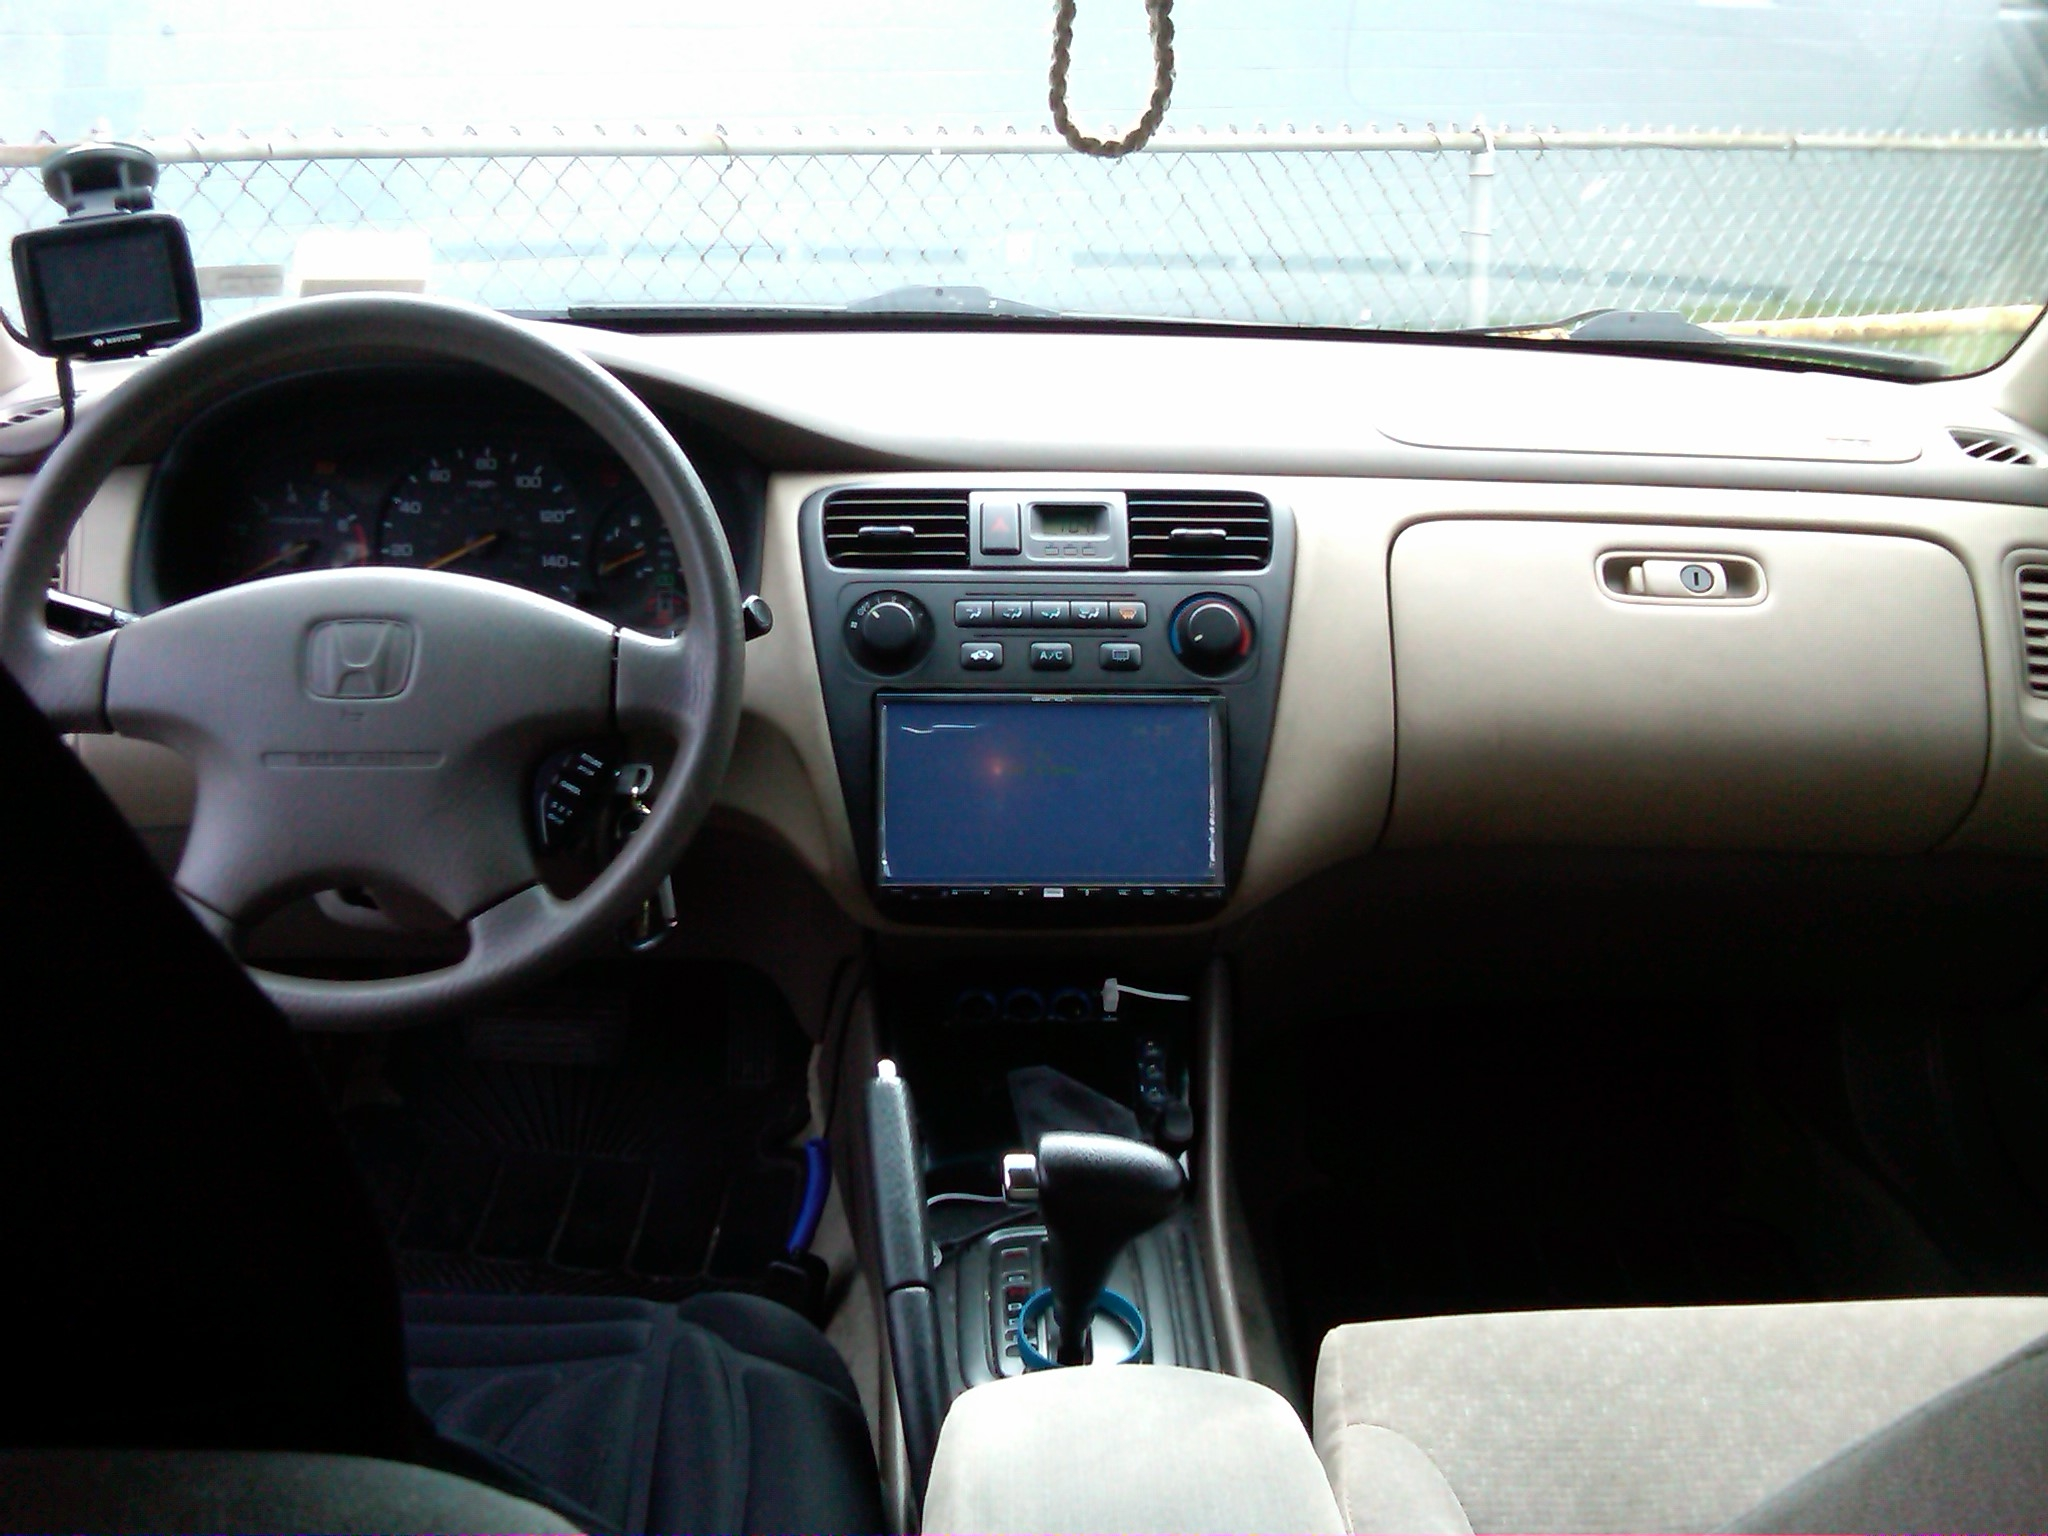 Another The Occh 13 2001 Honda Accord Post5235141 By Head Unit Audio Videotv Dvd Ipod Radio Backup Camera Made